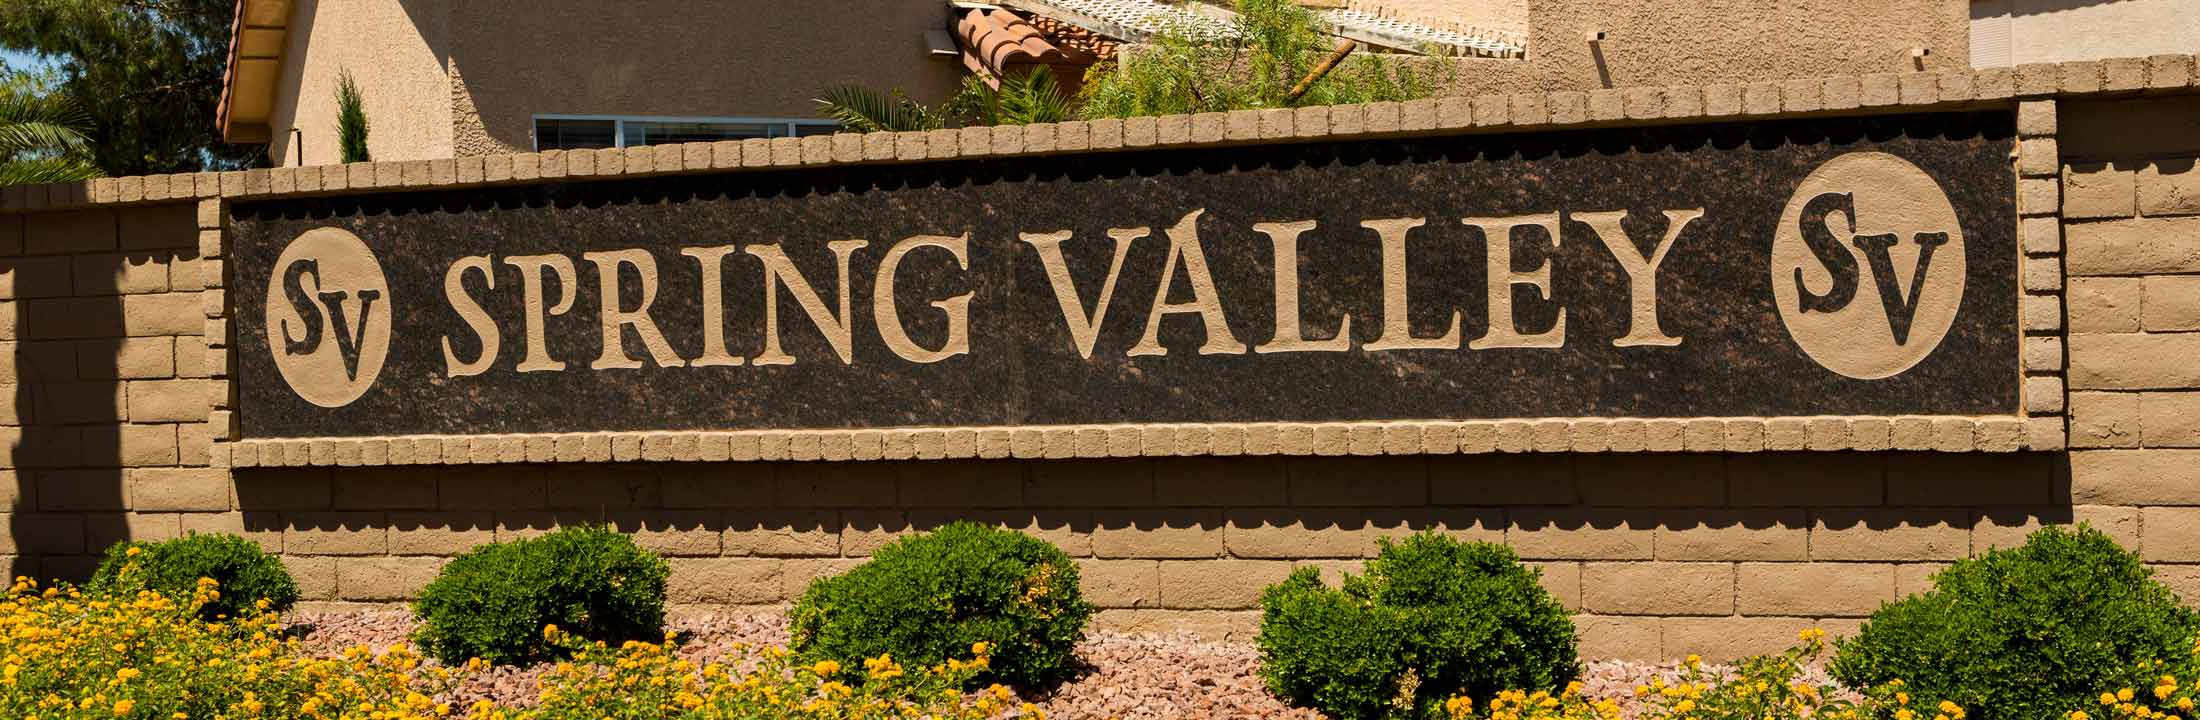 Spring Valley Homes for Sale in Las Vegas